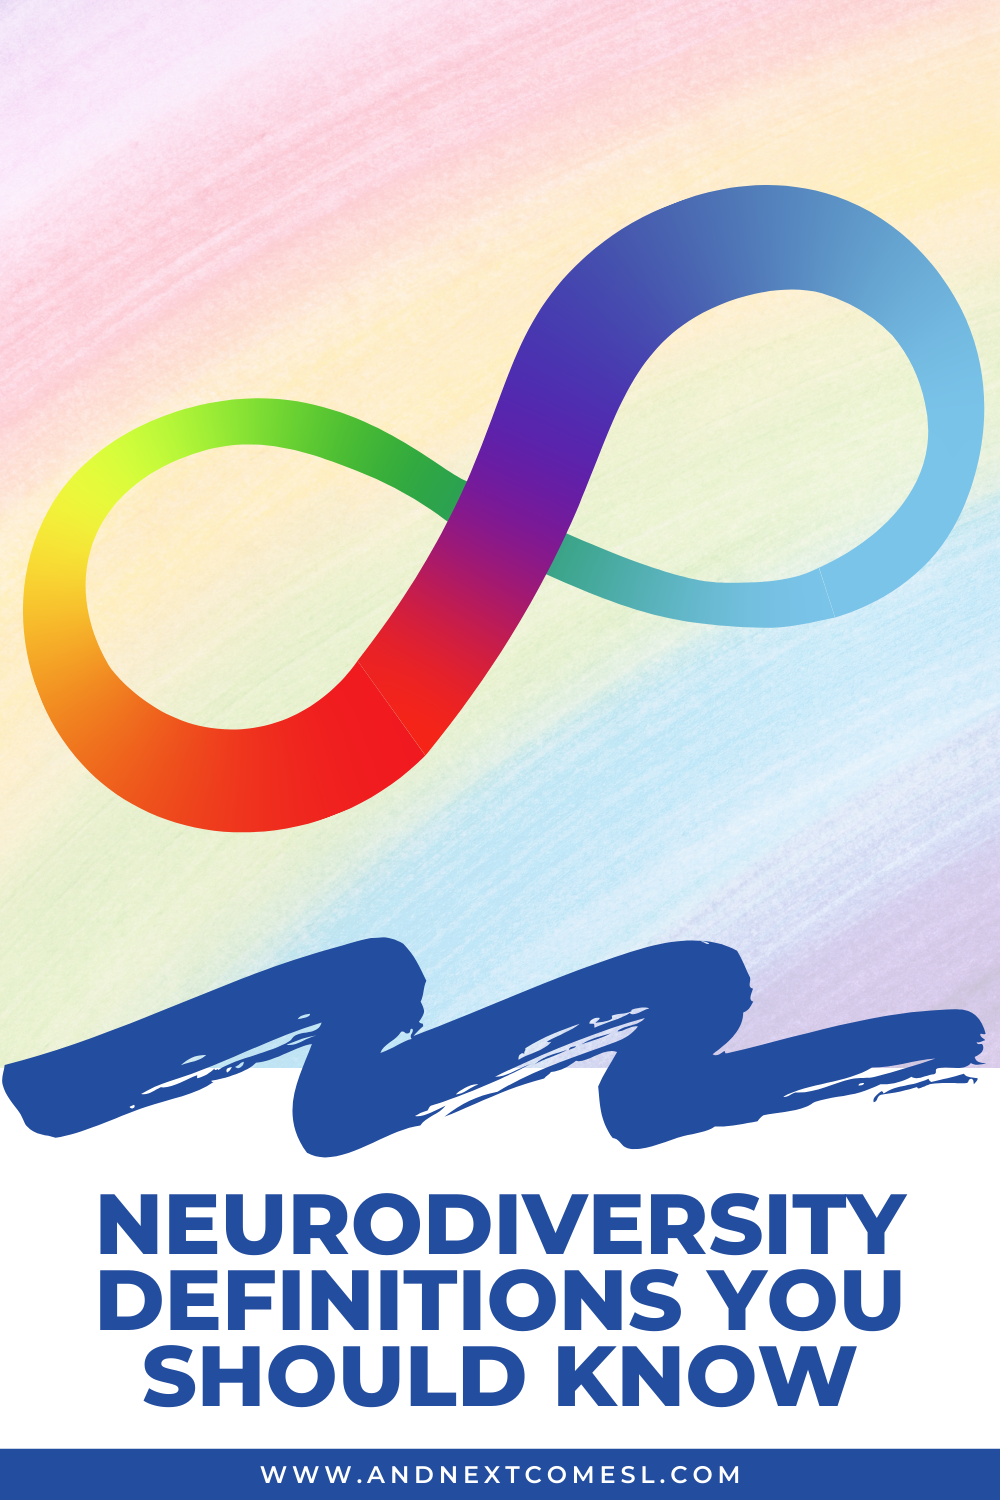 What is neurodiversity? What does neurodivergent mean? How about neurodiverse and neurotypical? Here's a list of common neurodiversity terms and their definitions